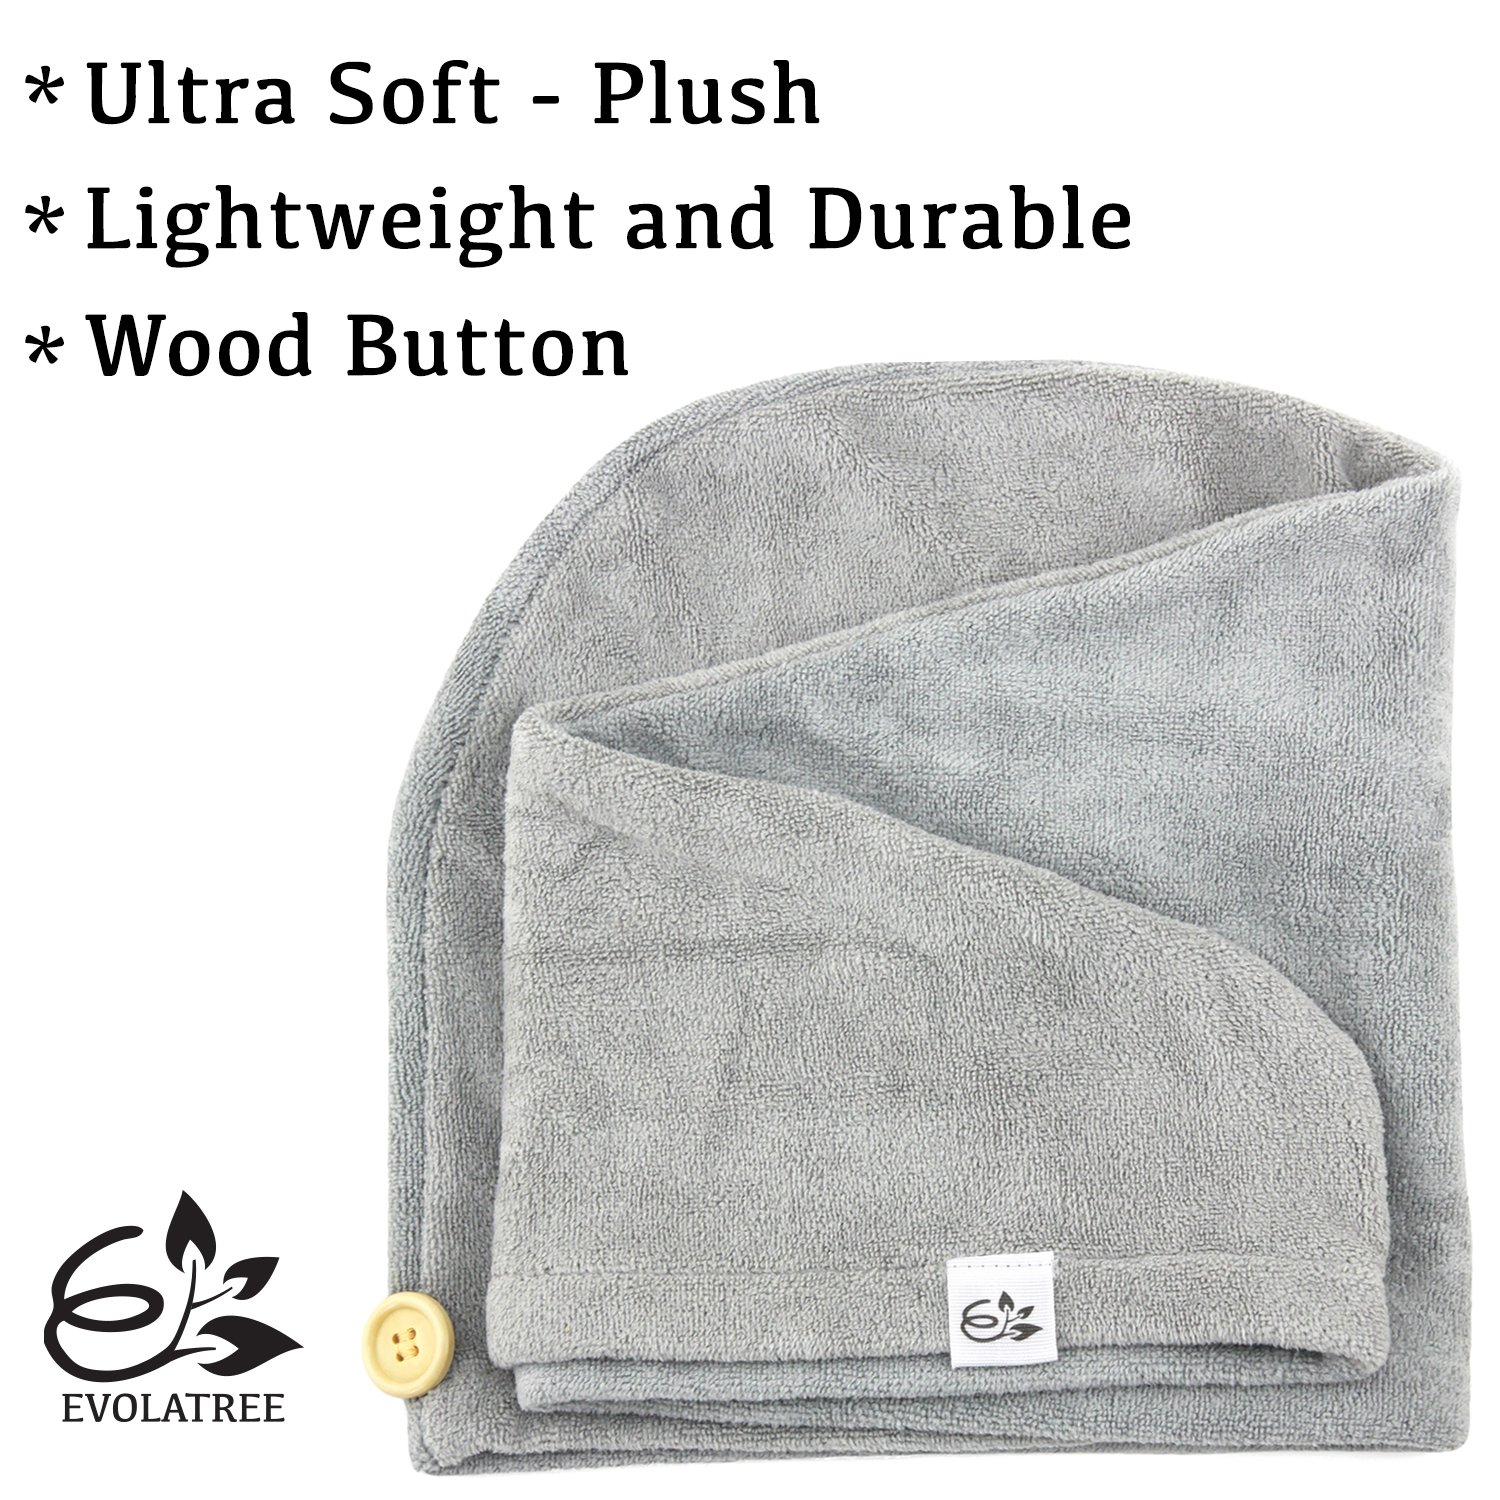 Evolatree Microfiber Hair Towel Wrap - Quick Magic Hair Dry Hat - Anti Frizz Products For Curly Hair Drying Towels - Neutral Gray by Evolatree (Image #3)